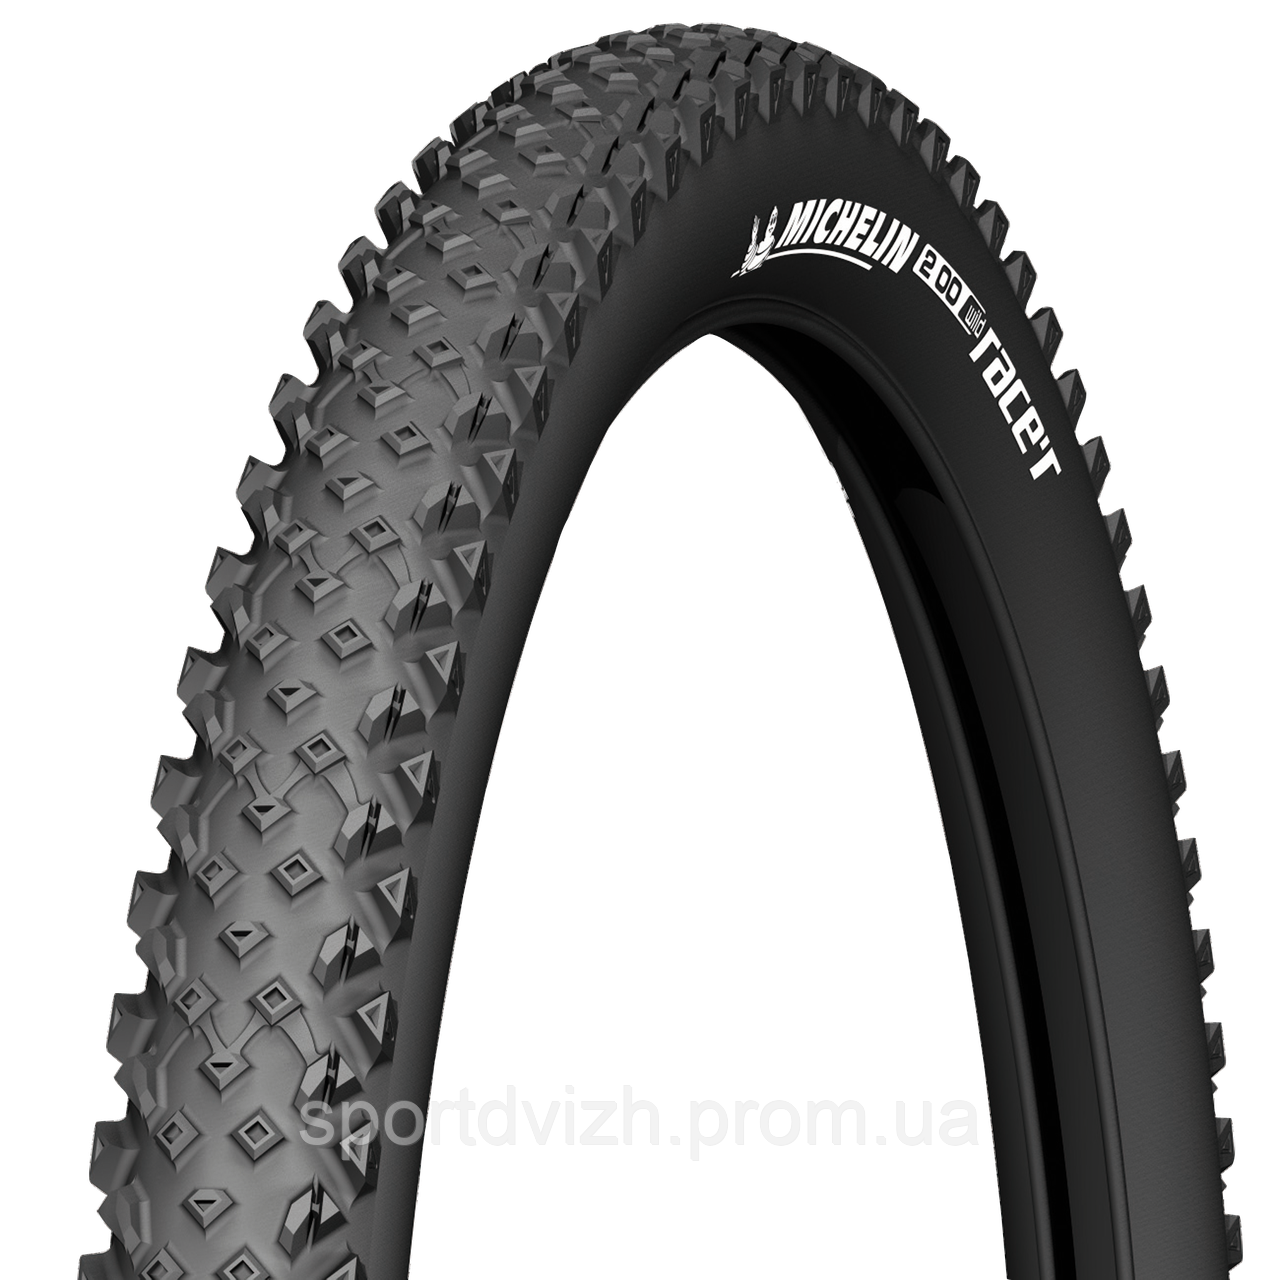 michelin Покрышка Michelin WILDRACER2 ADVANCED 26 (26X2.25) MTB, черный 629899